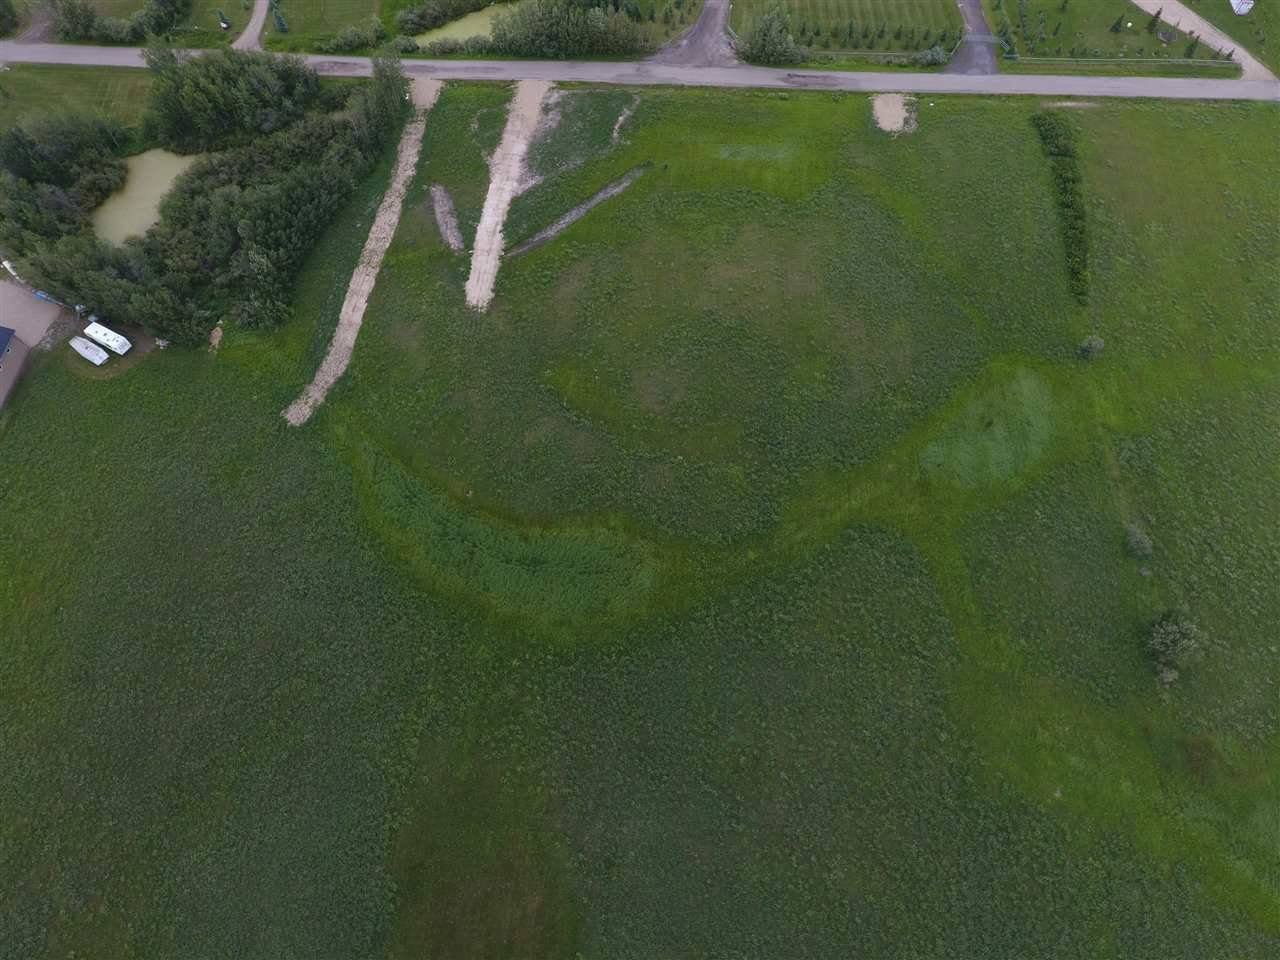 Main Photo: 22111 Twp Rd 510: Rural Leduc County Rural Land/Vacant Lot for sale : MLS®# E4118446